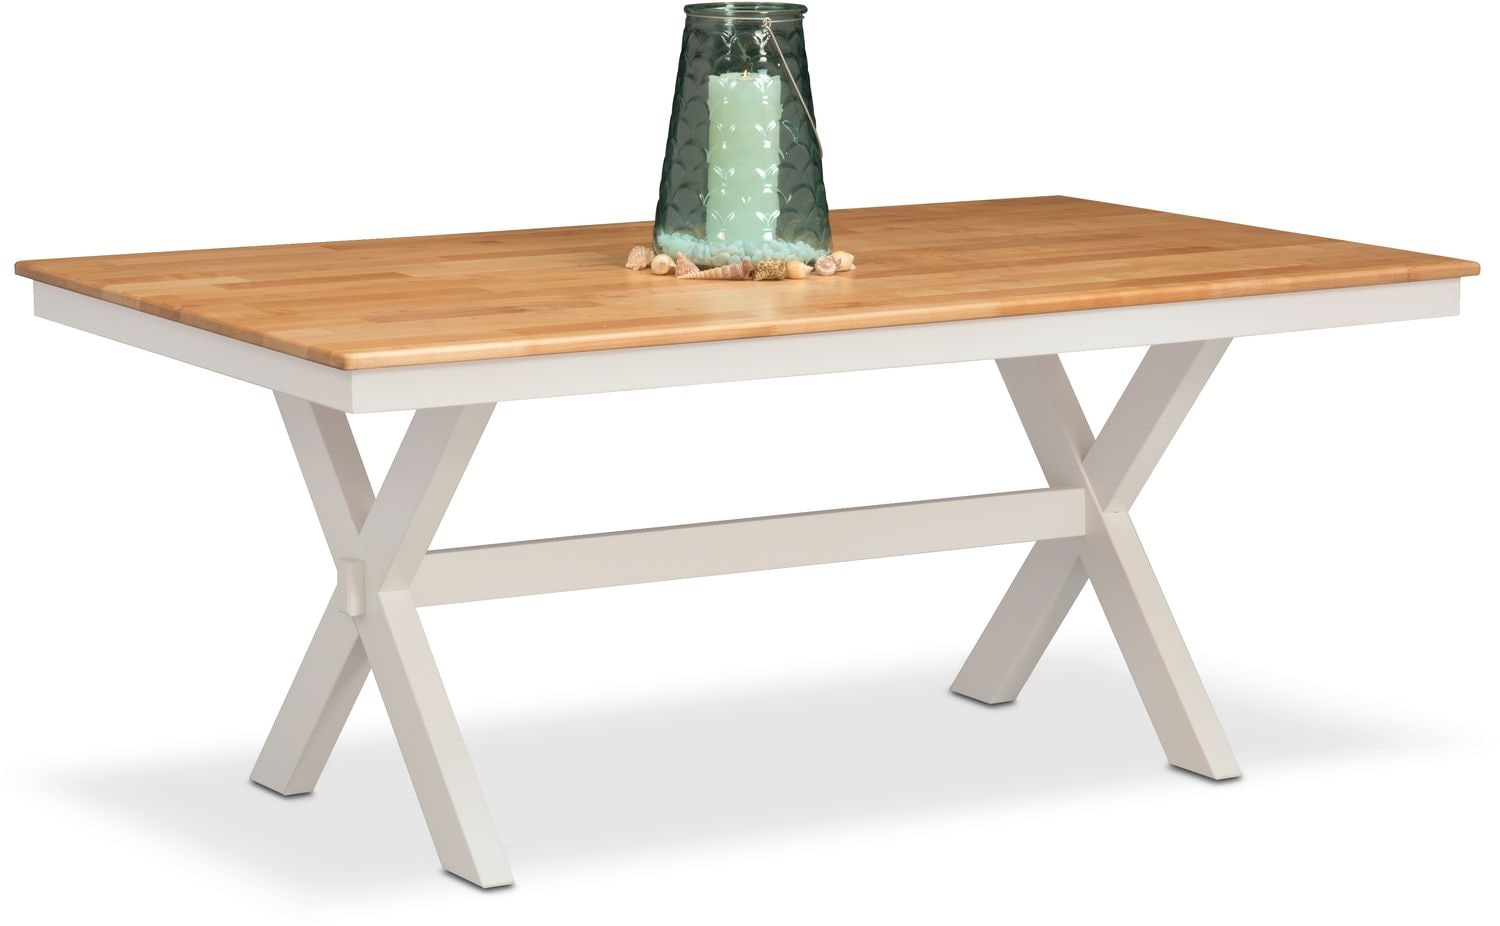 Nantucket Trestle Table - Maple and White